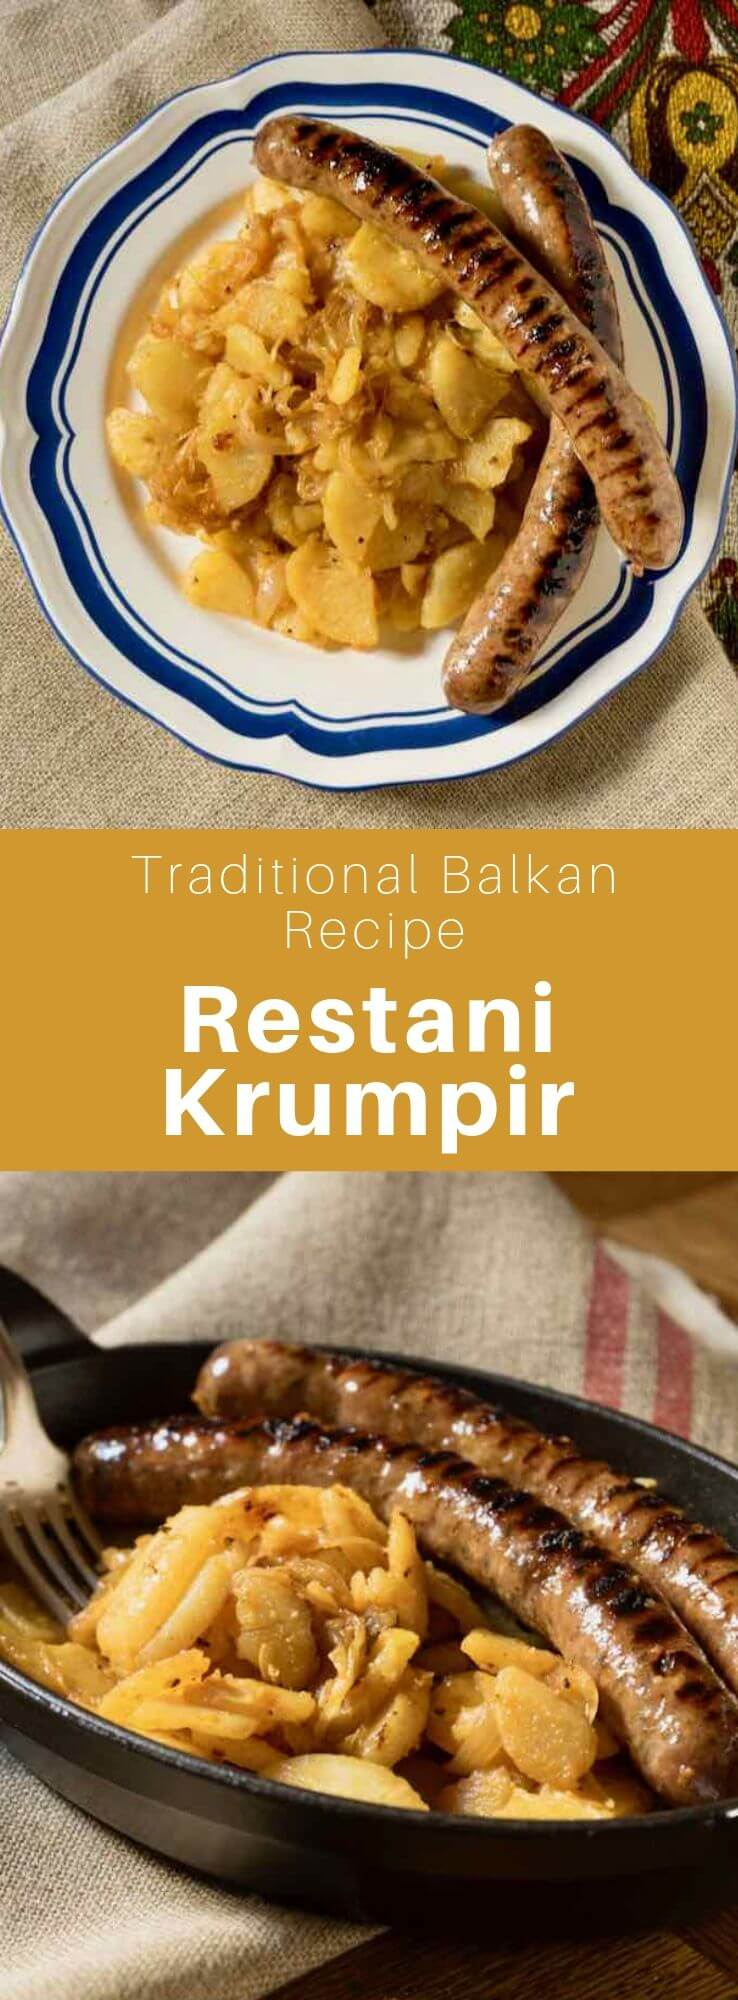 Restani krumpir is a traditional Croatian dish made from hash browns that is served with sausages for breakfast. #CroatiaRecipe #CroatiaCuisine #BalkansCuisine #BalkansRecipe #WorldCuisine #196flavors